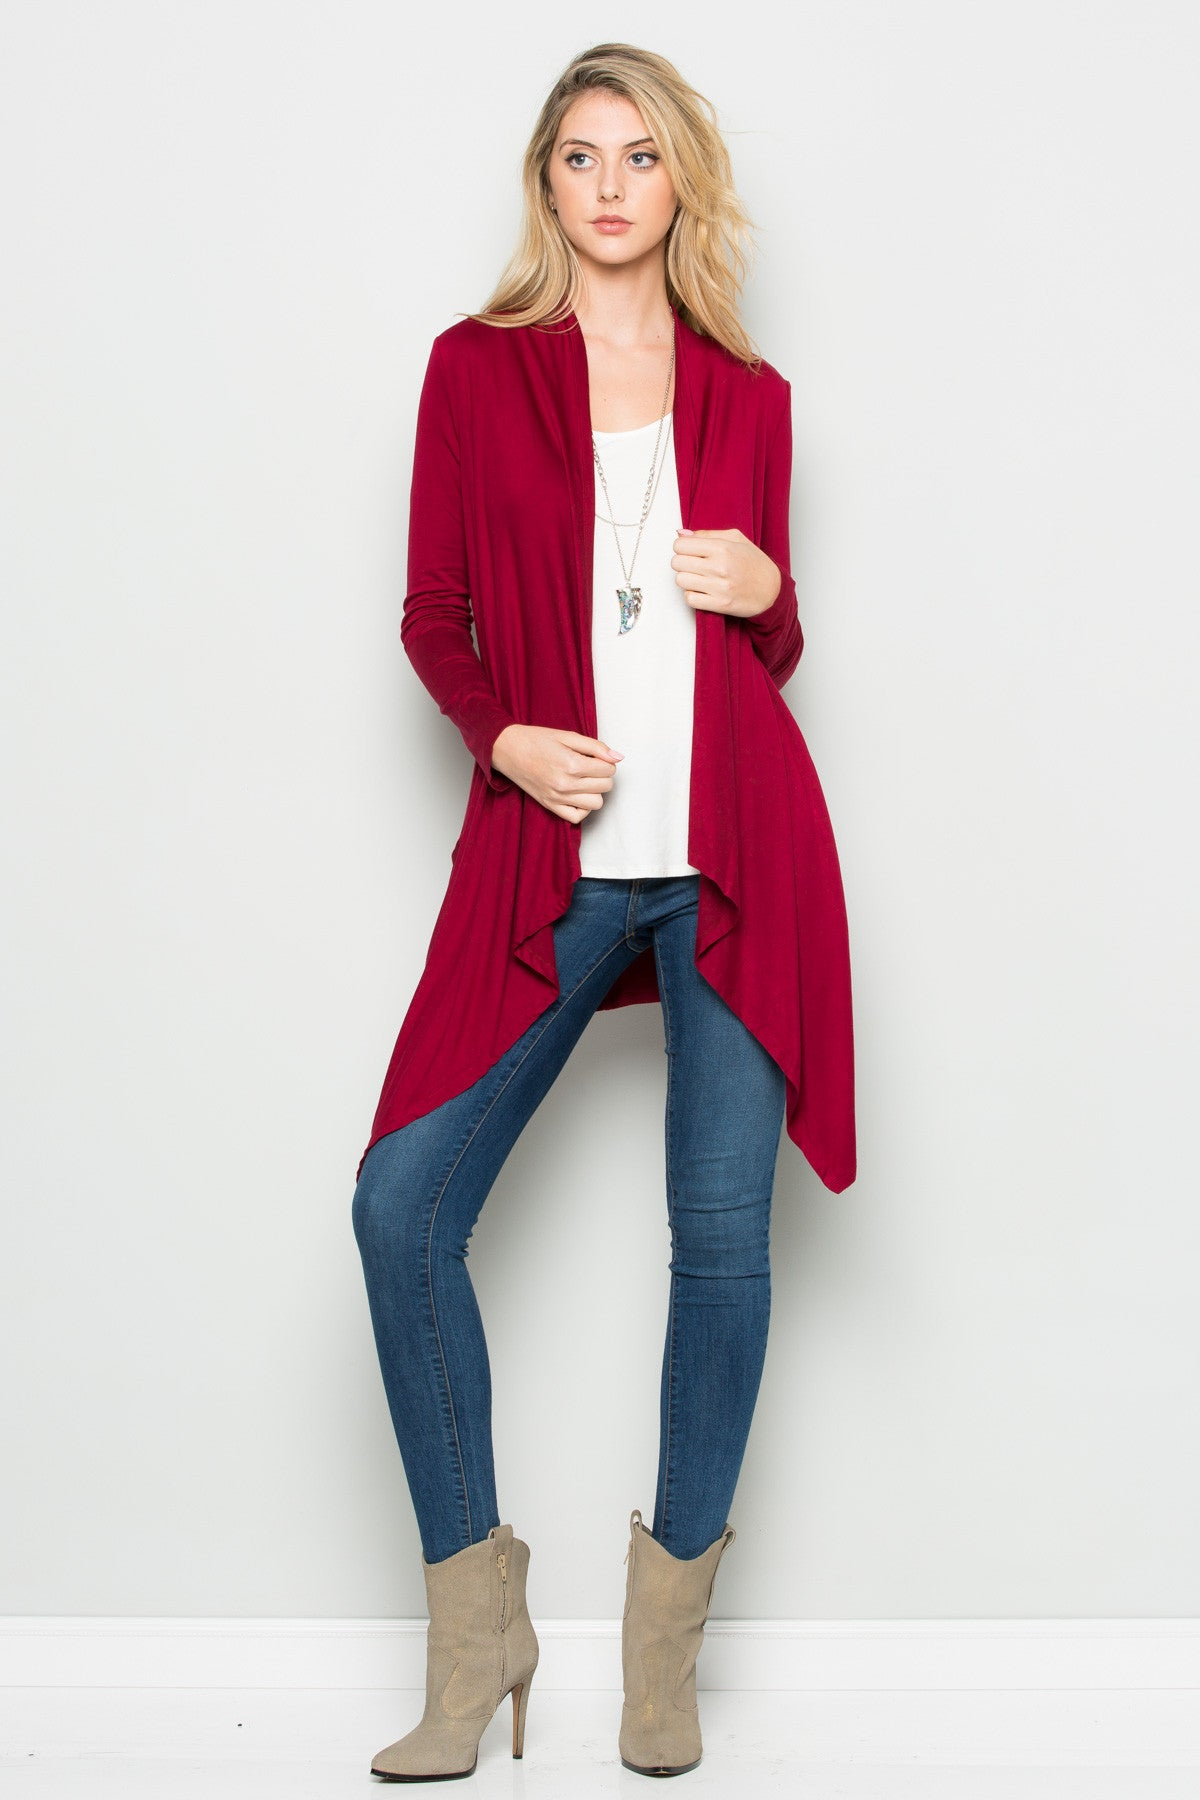 Burgundy Lightweight Long Sleeve Cardigan - Jacket - My Yuccie - 4